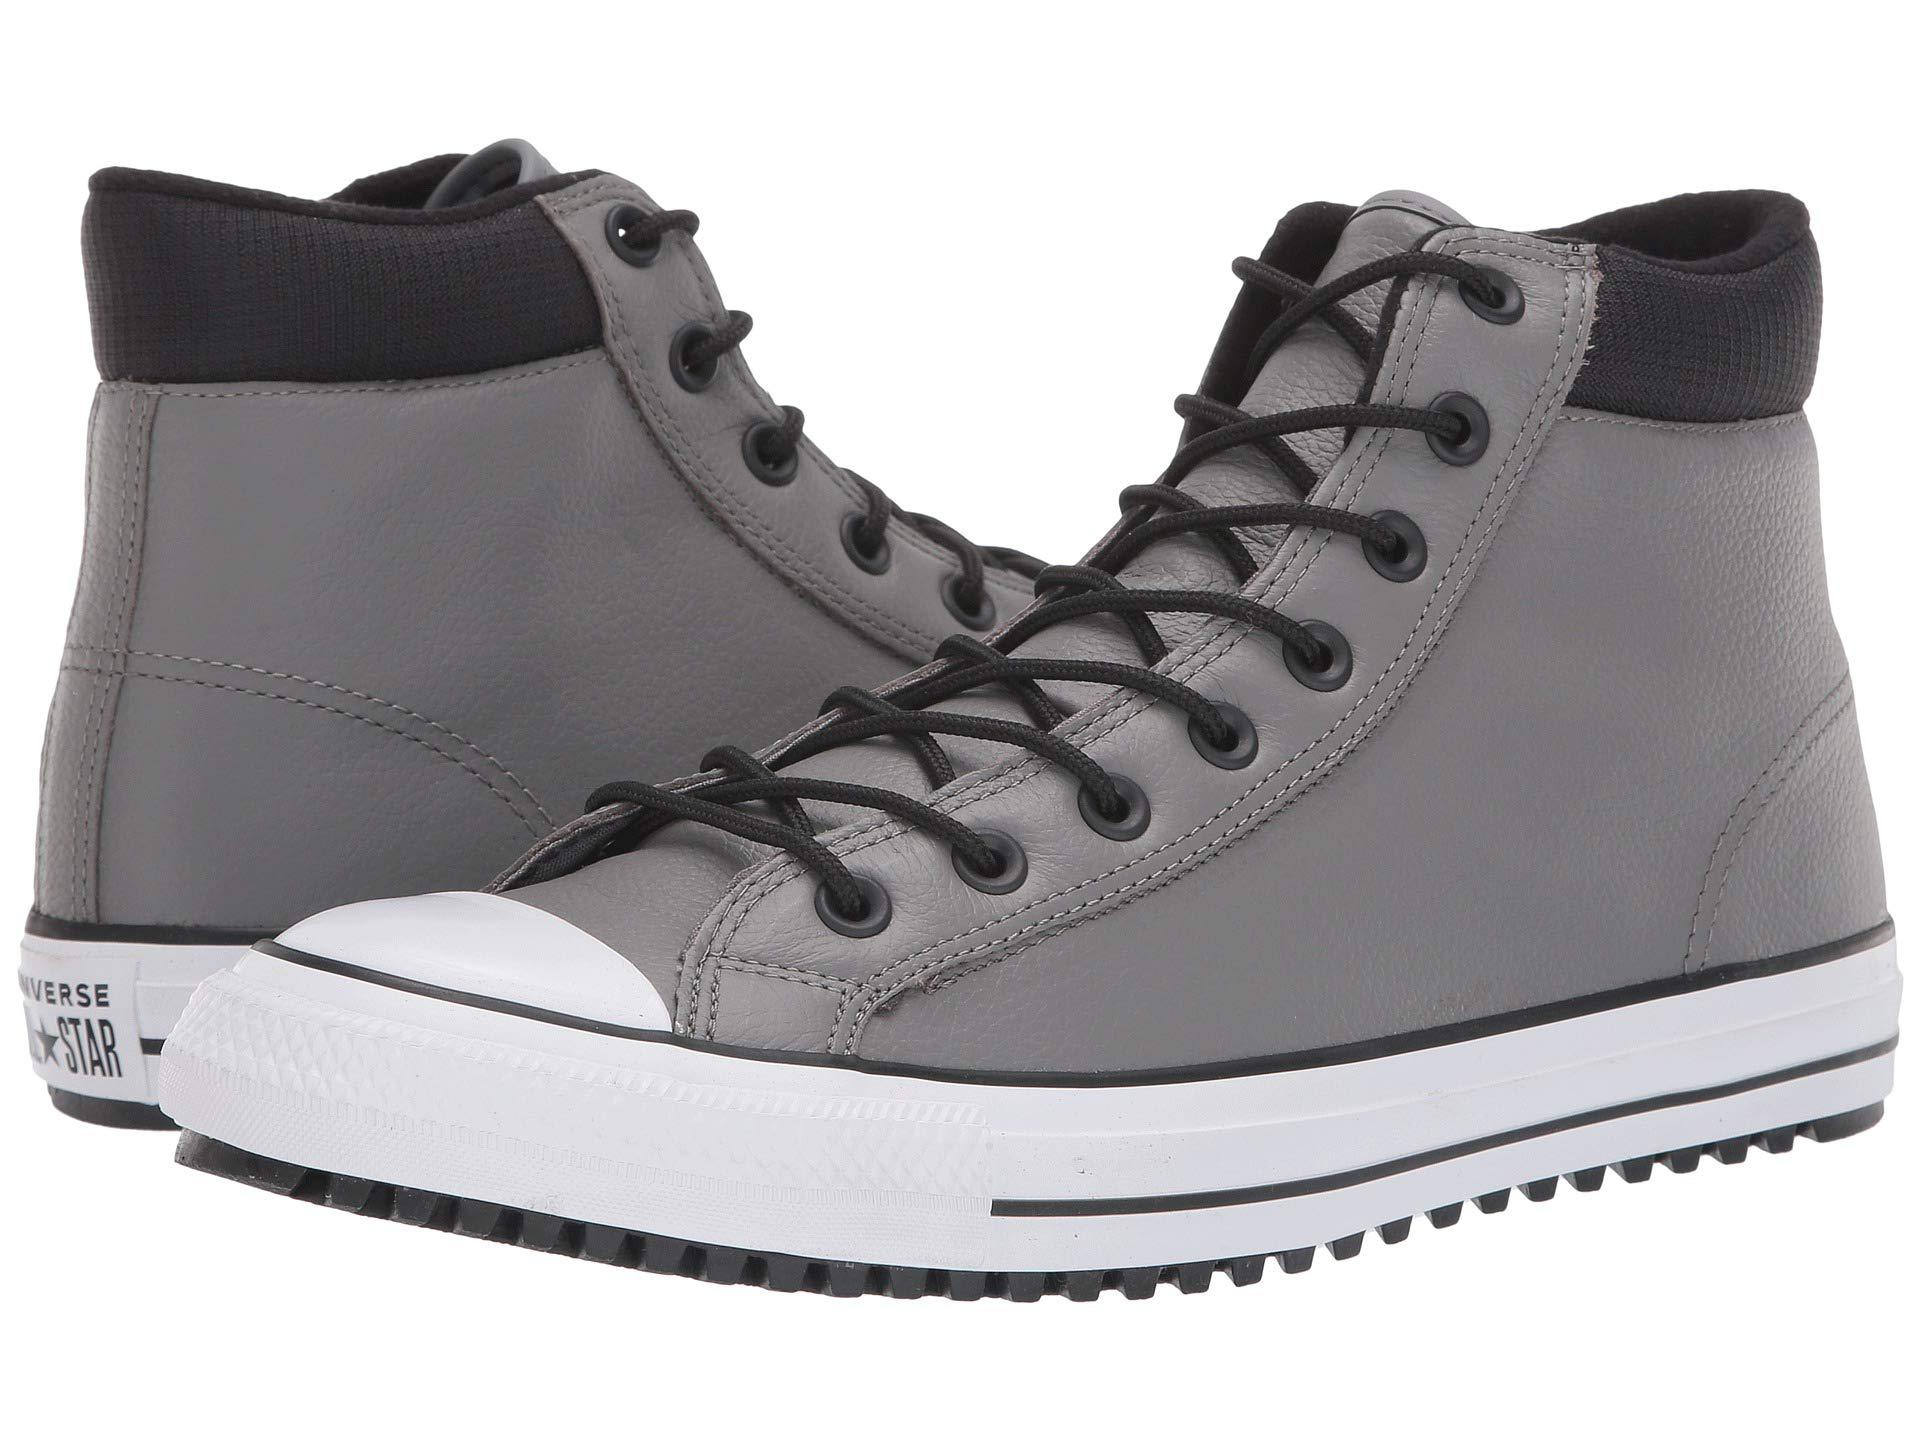 566cefa89c71 Lyst - Converse Chuck Taylor All Star Padded Collar Boot - Hi (mason ...